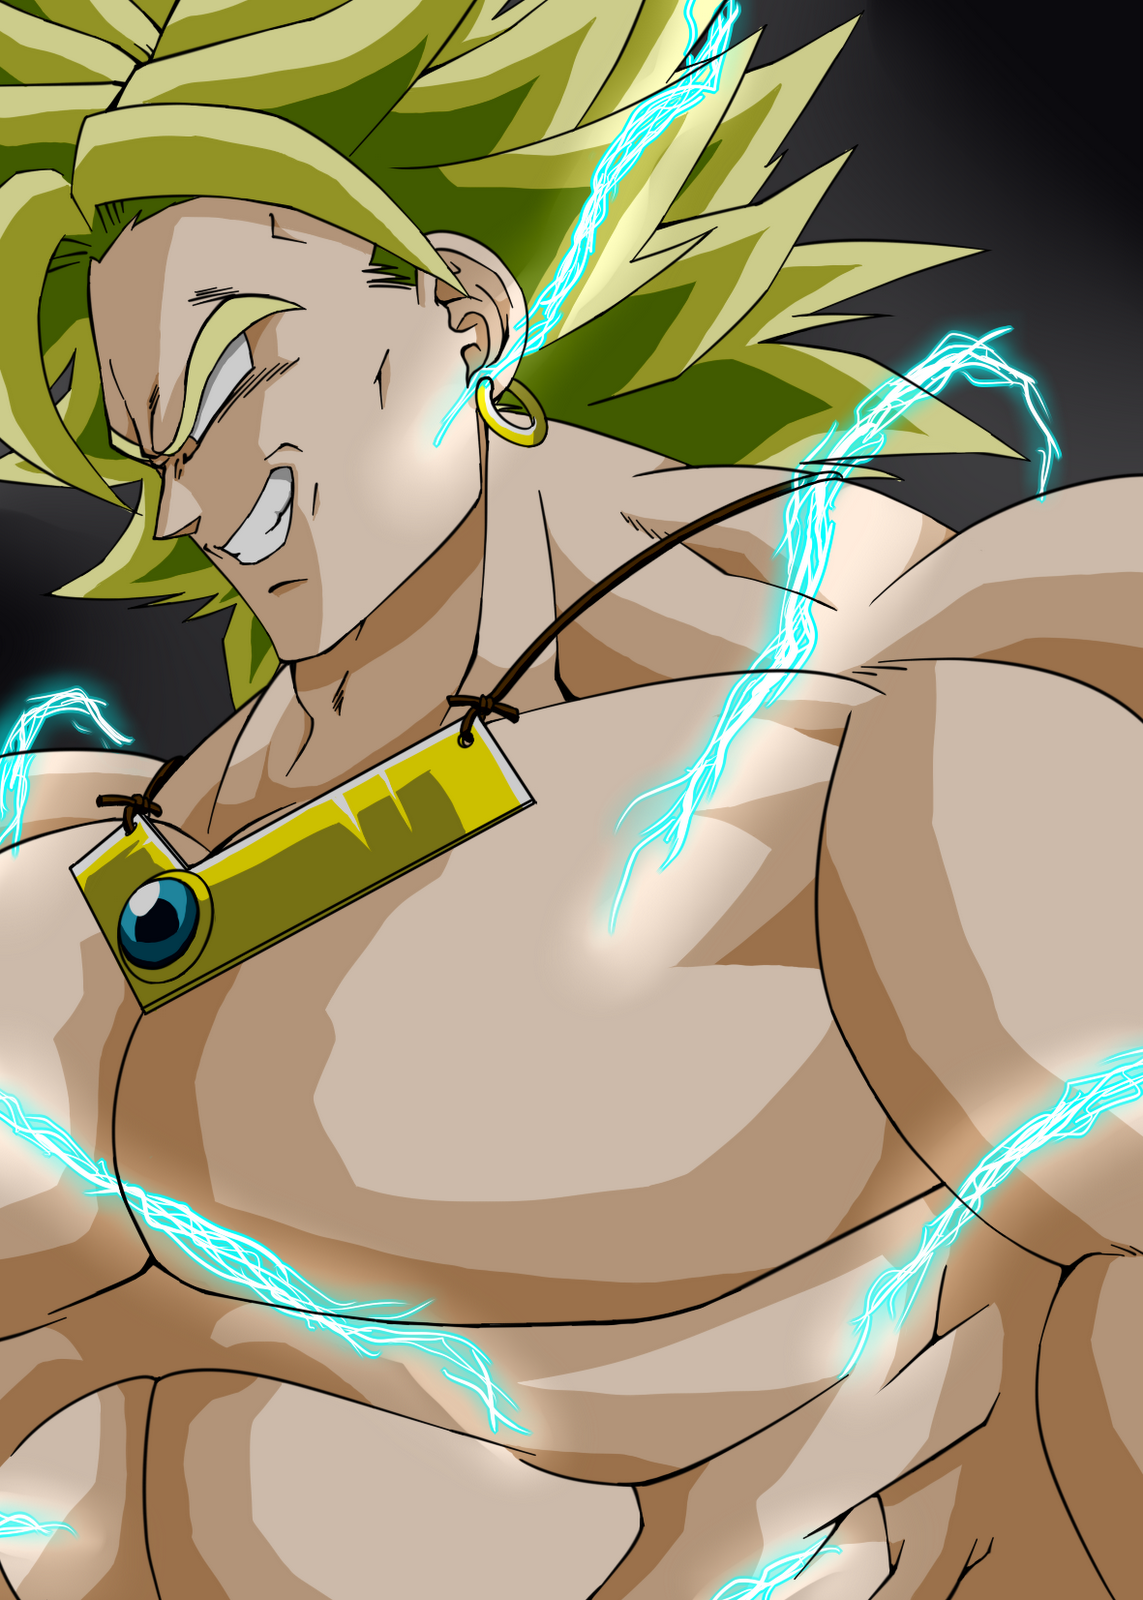 http://2.bp.blogspot.com/--lxprVJz4_I/UCPqN2g8_WI/AAAAAAAAF58/8n3Ytop2NAI/s1600/broly009.png